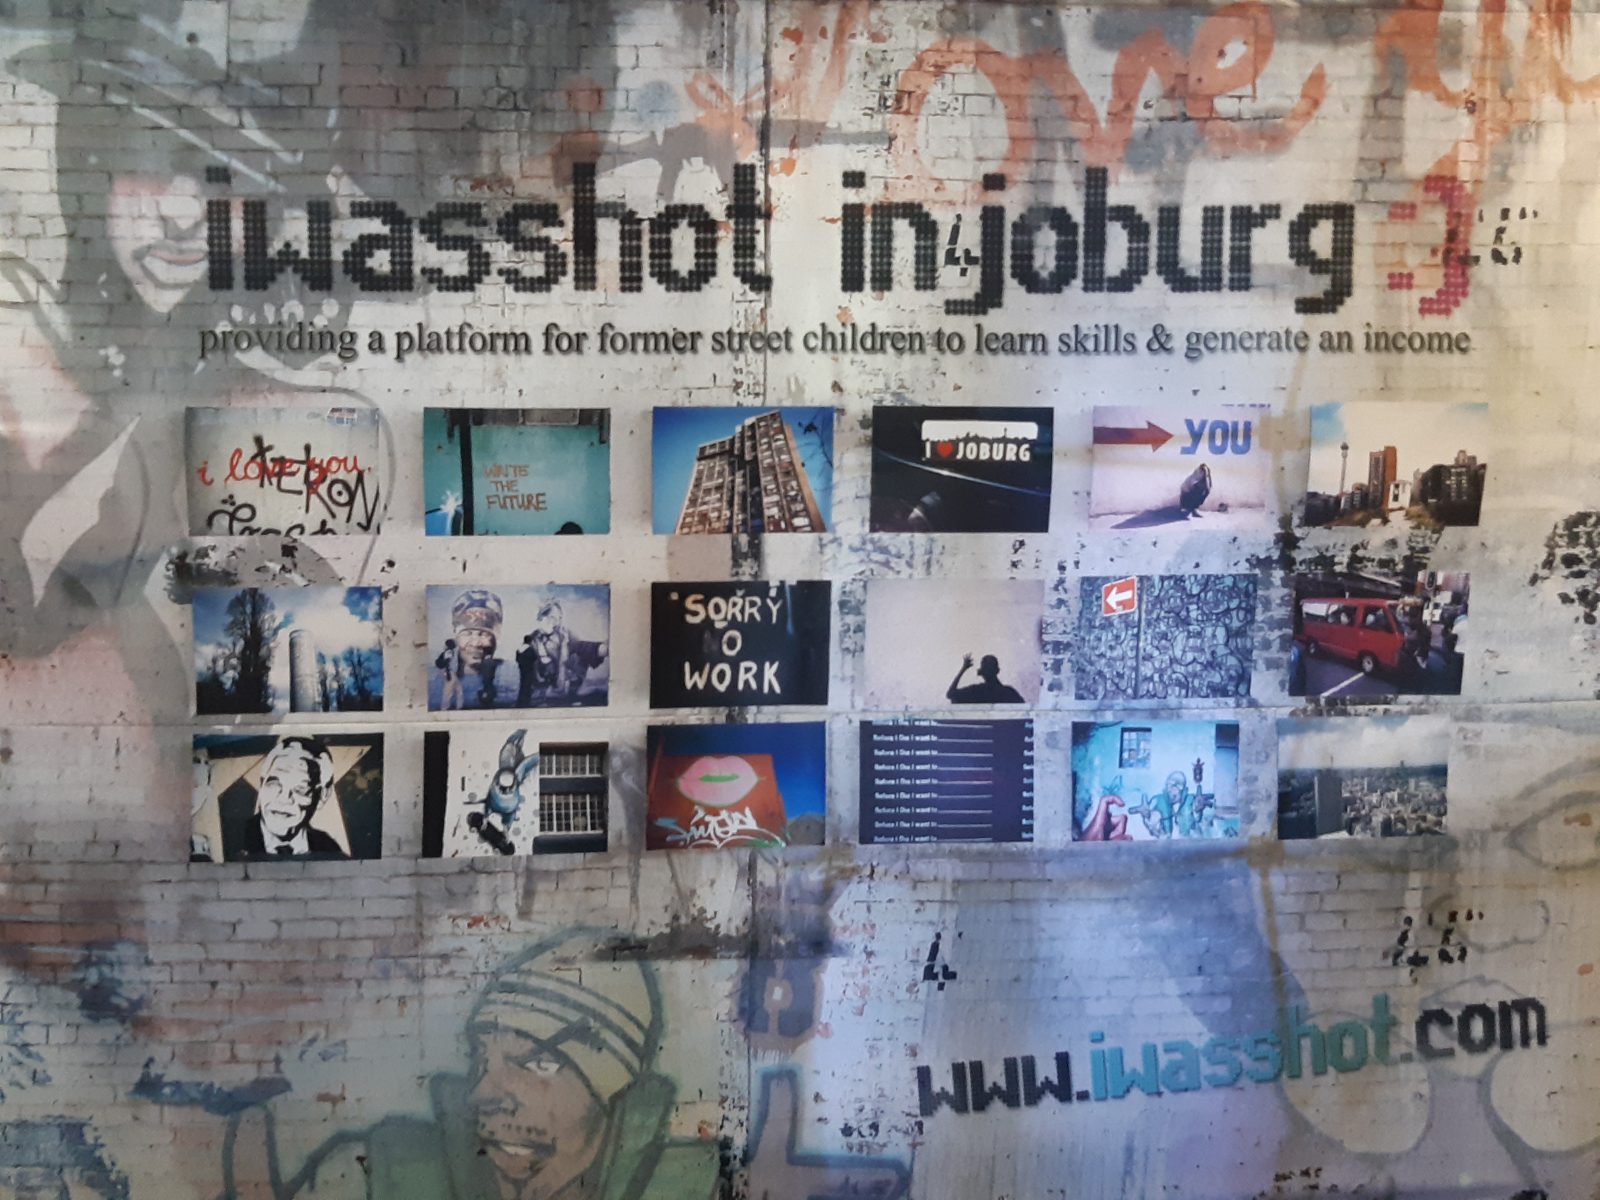 i was shot in joburg